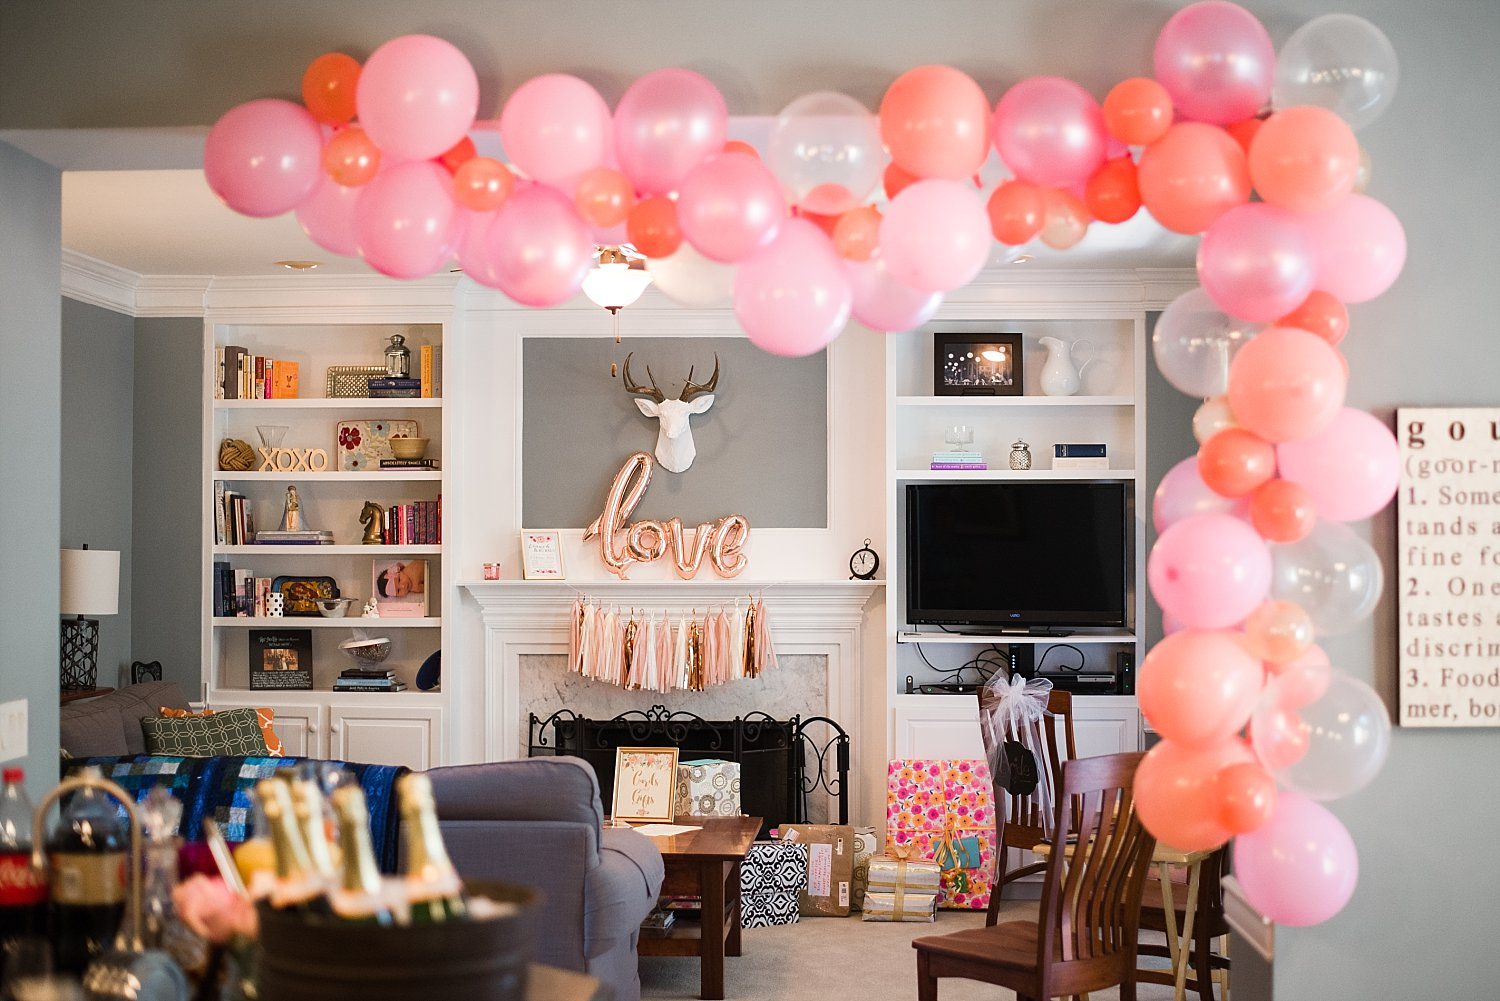 pink balloon arch and bridal shower decor